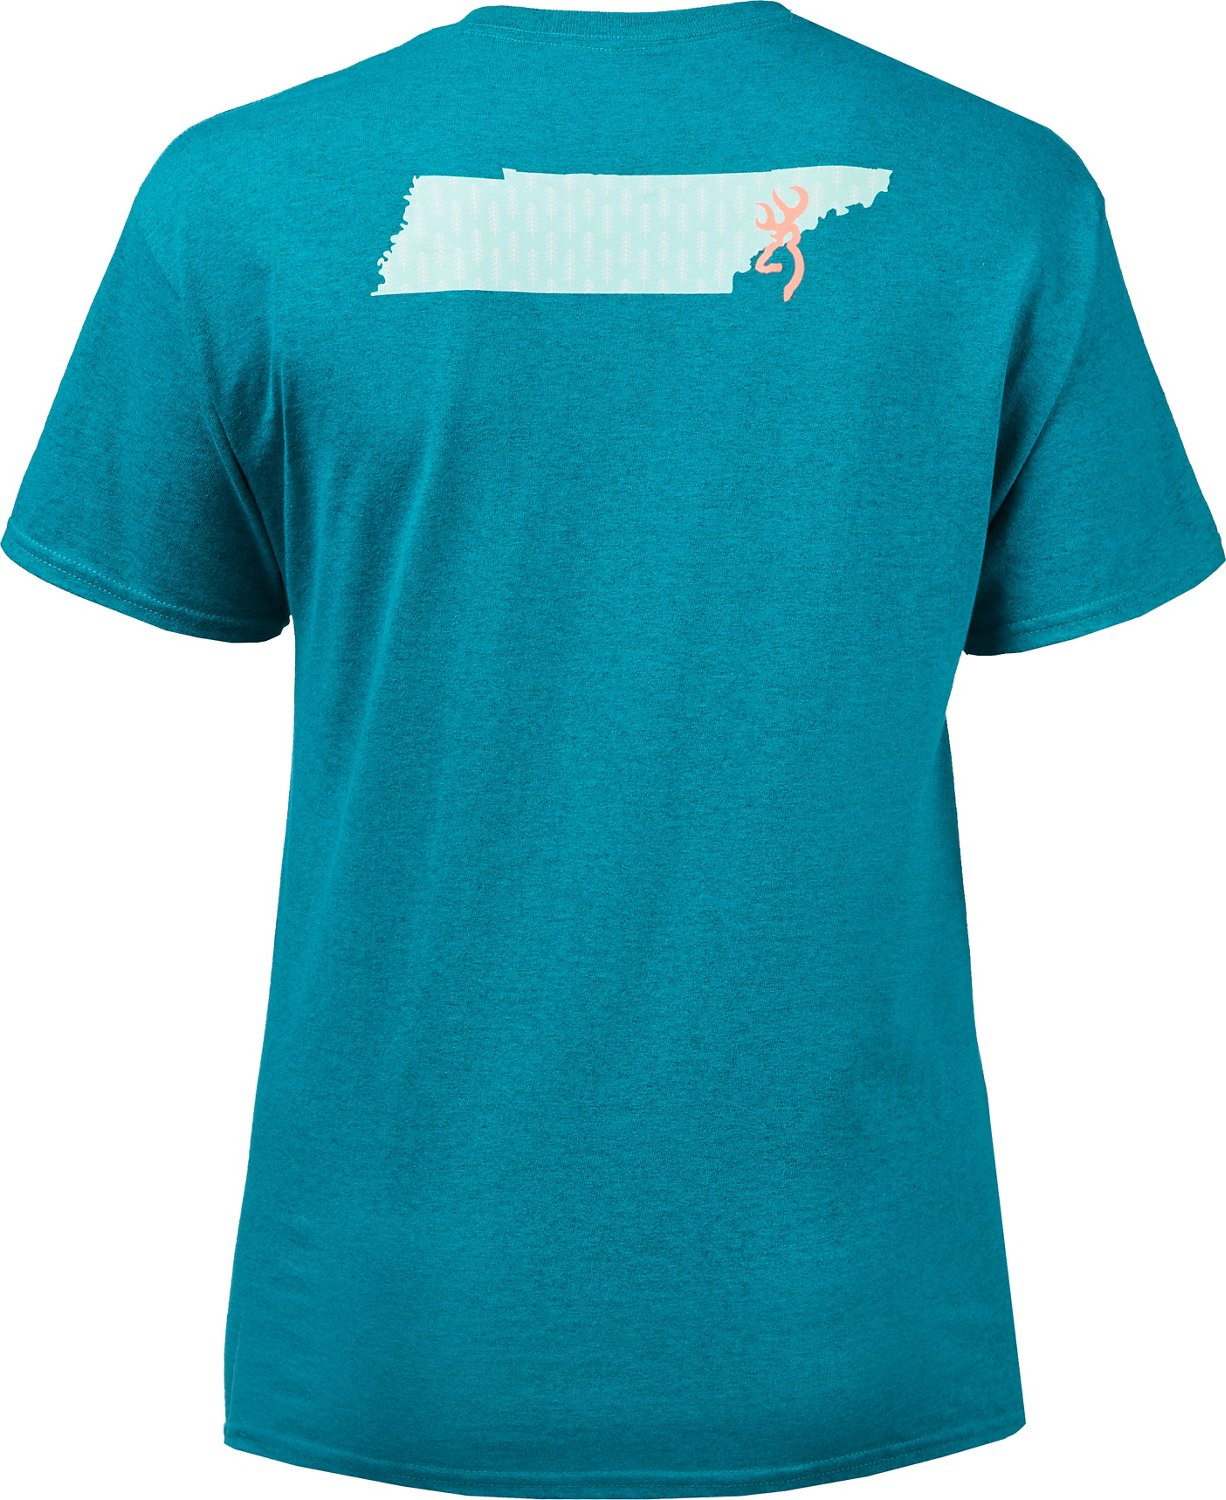 Browning Women's Classic Pine Tree Tennessee T-shirt